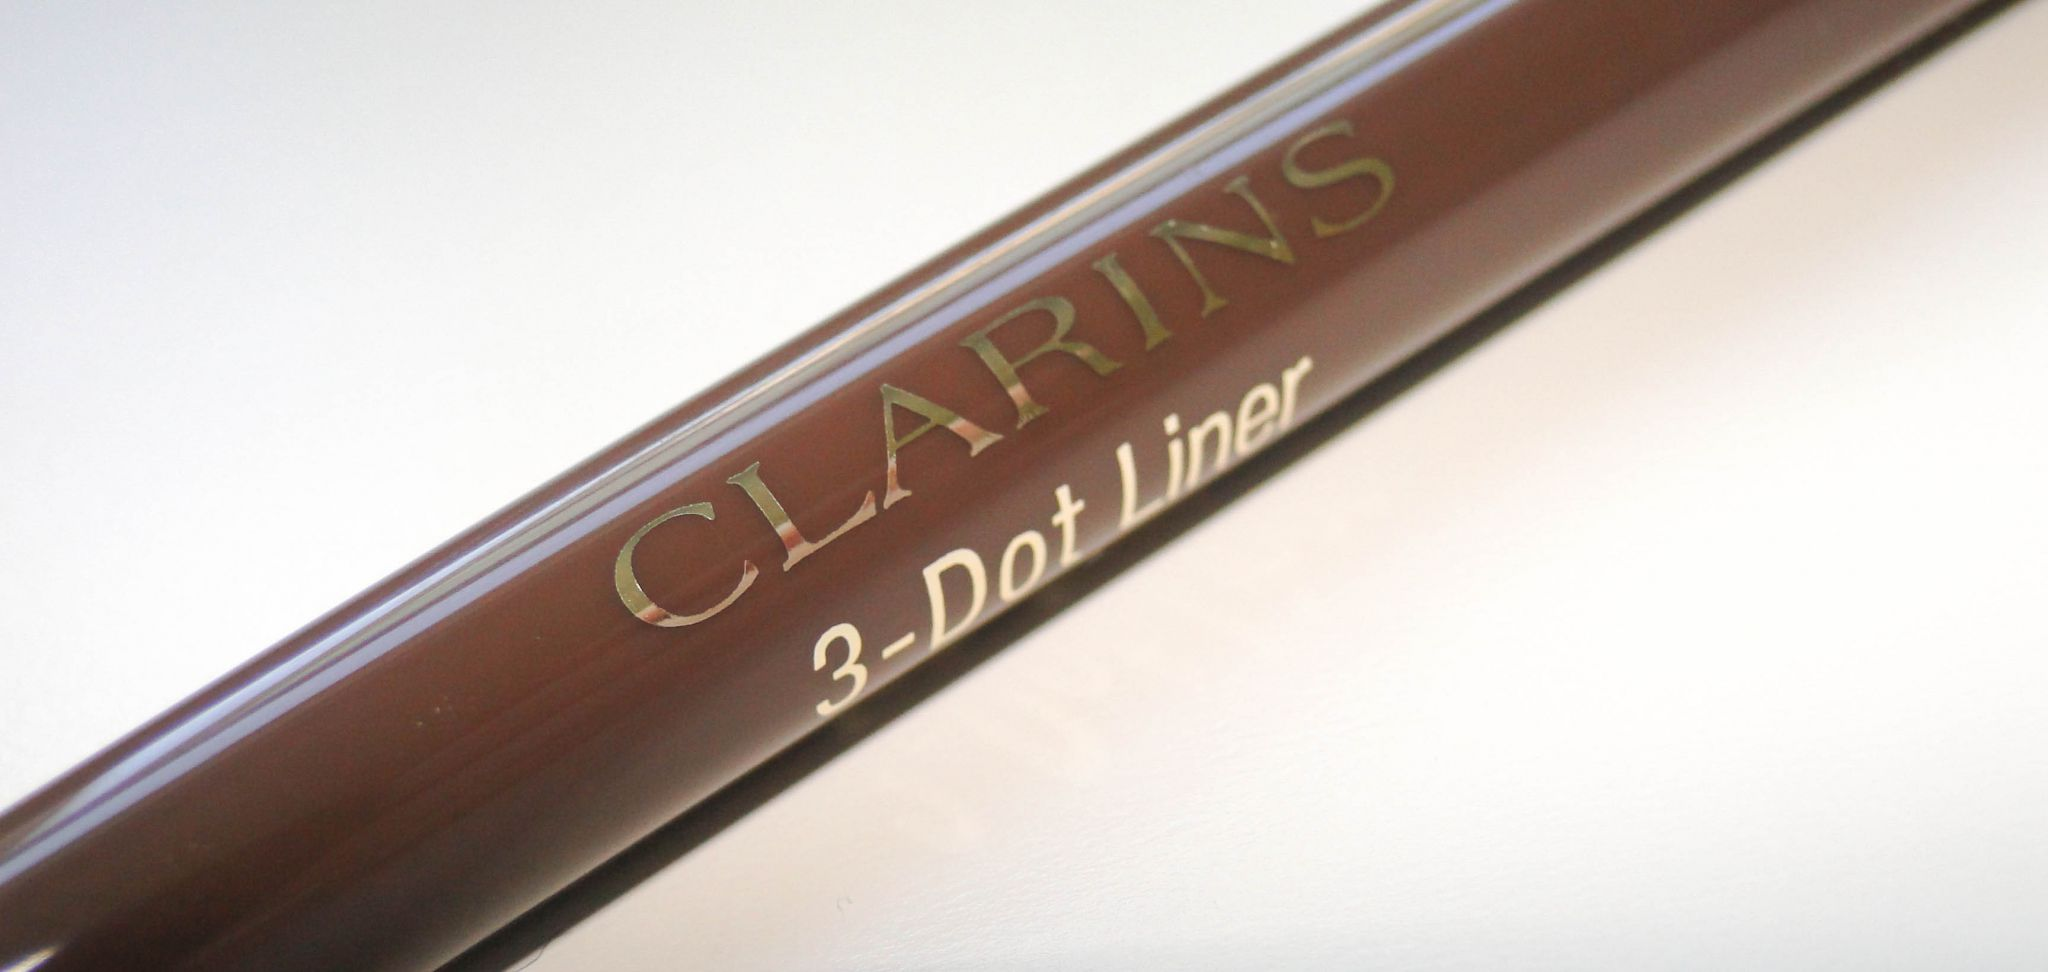 Clarins Autumn 2014 Brown 3 Dot Liner